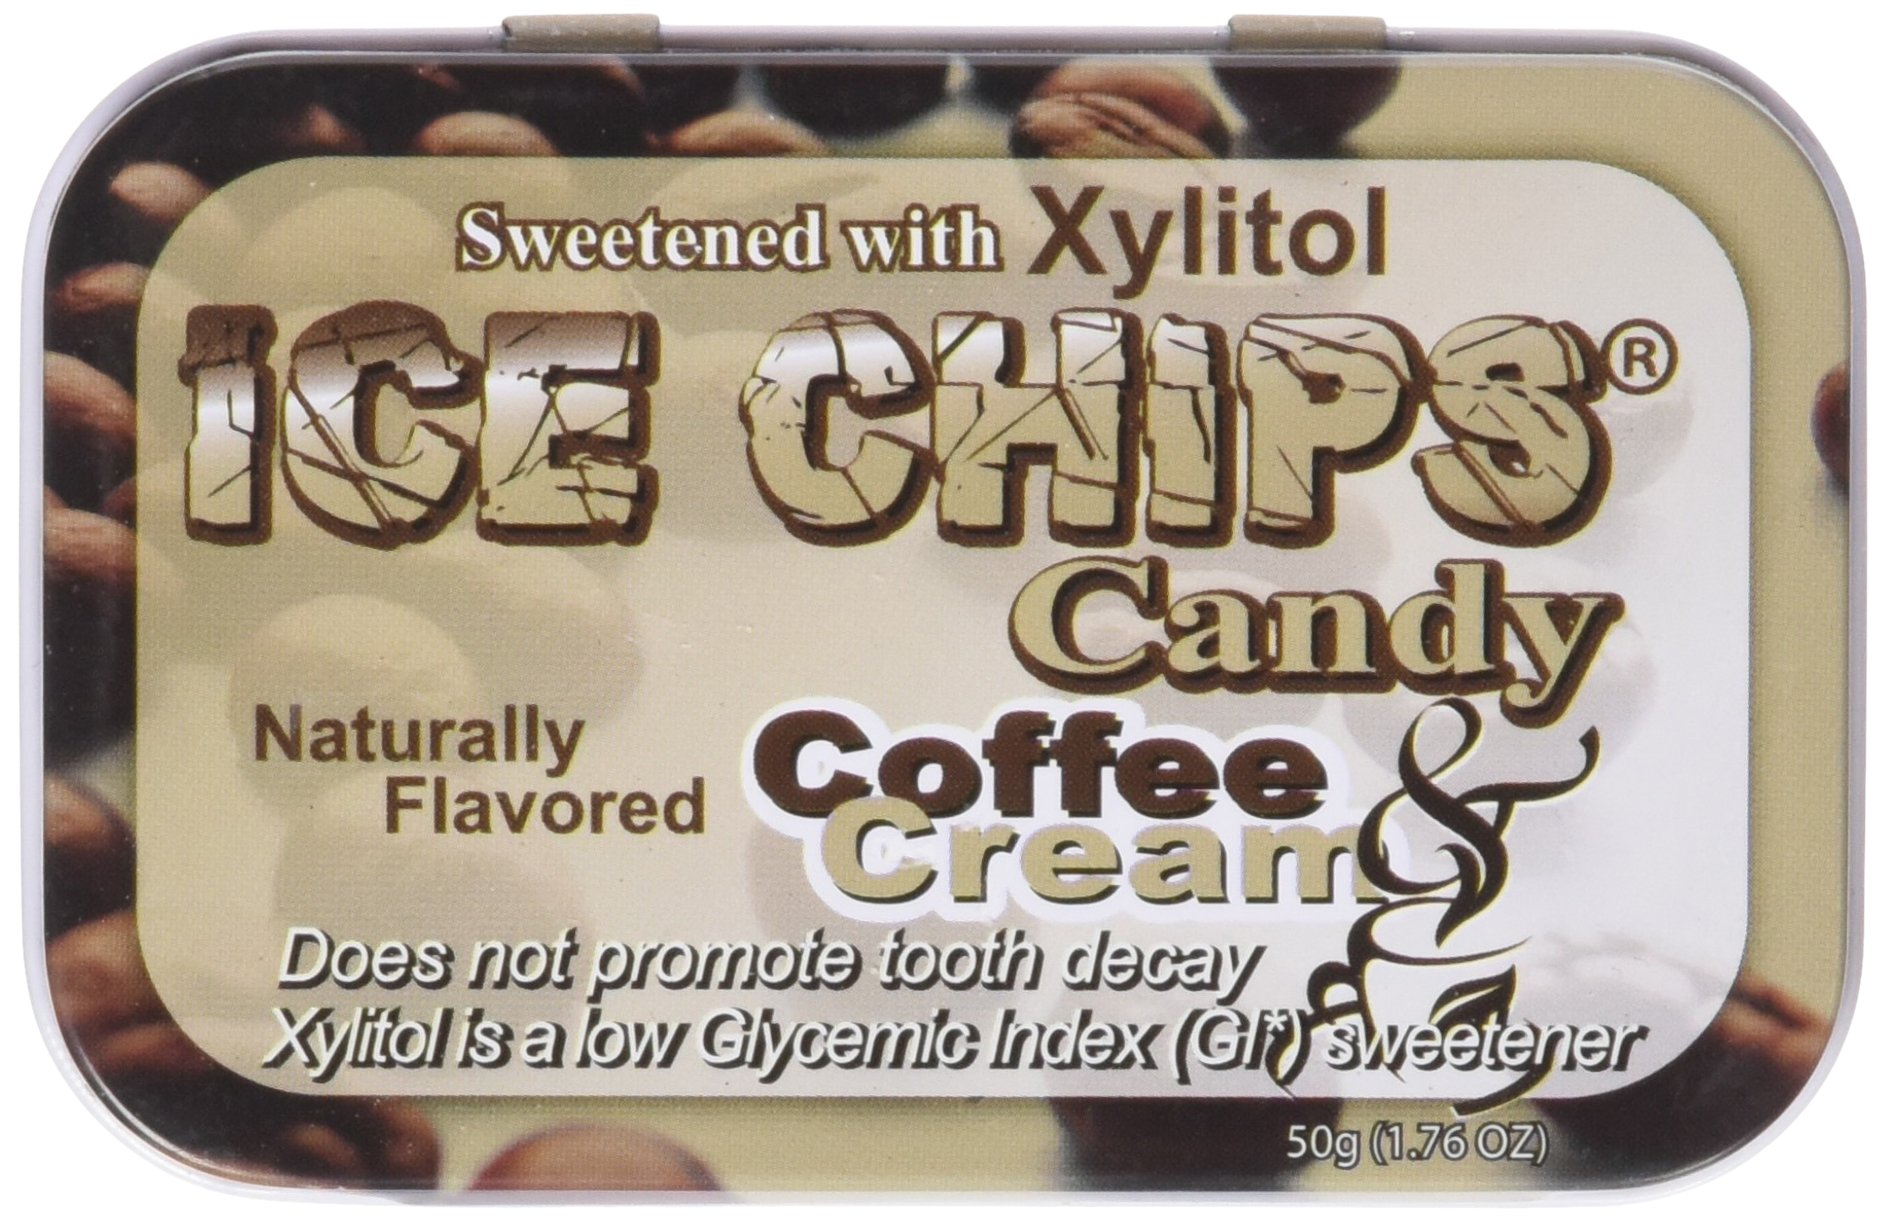 Hand Crafted Candy Tin Coffee & Cream Ice Chips Candy 1.76 oz Candy